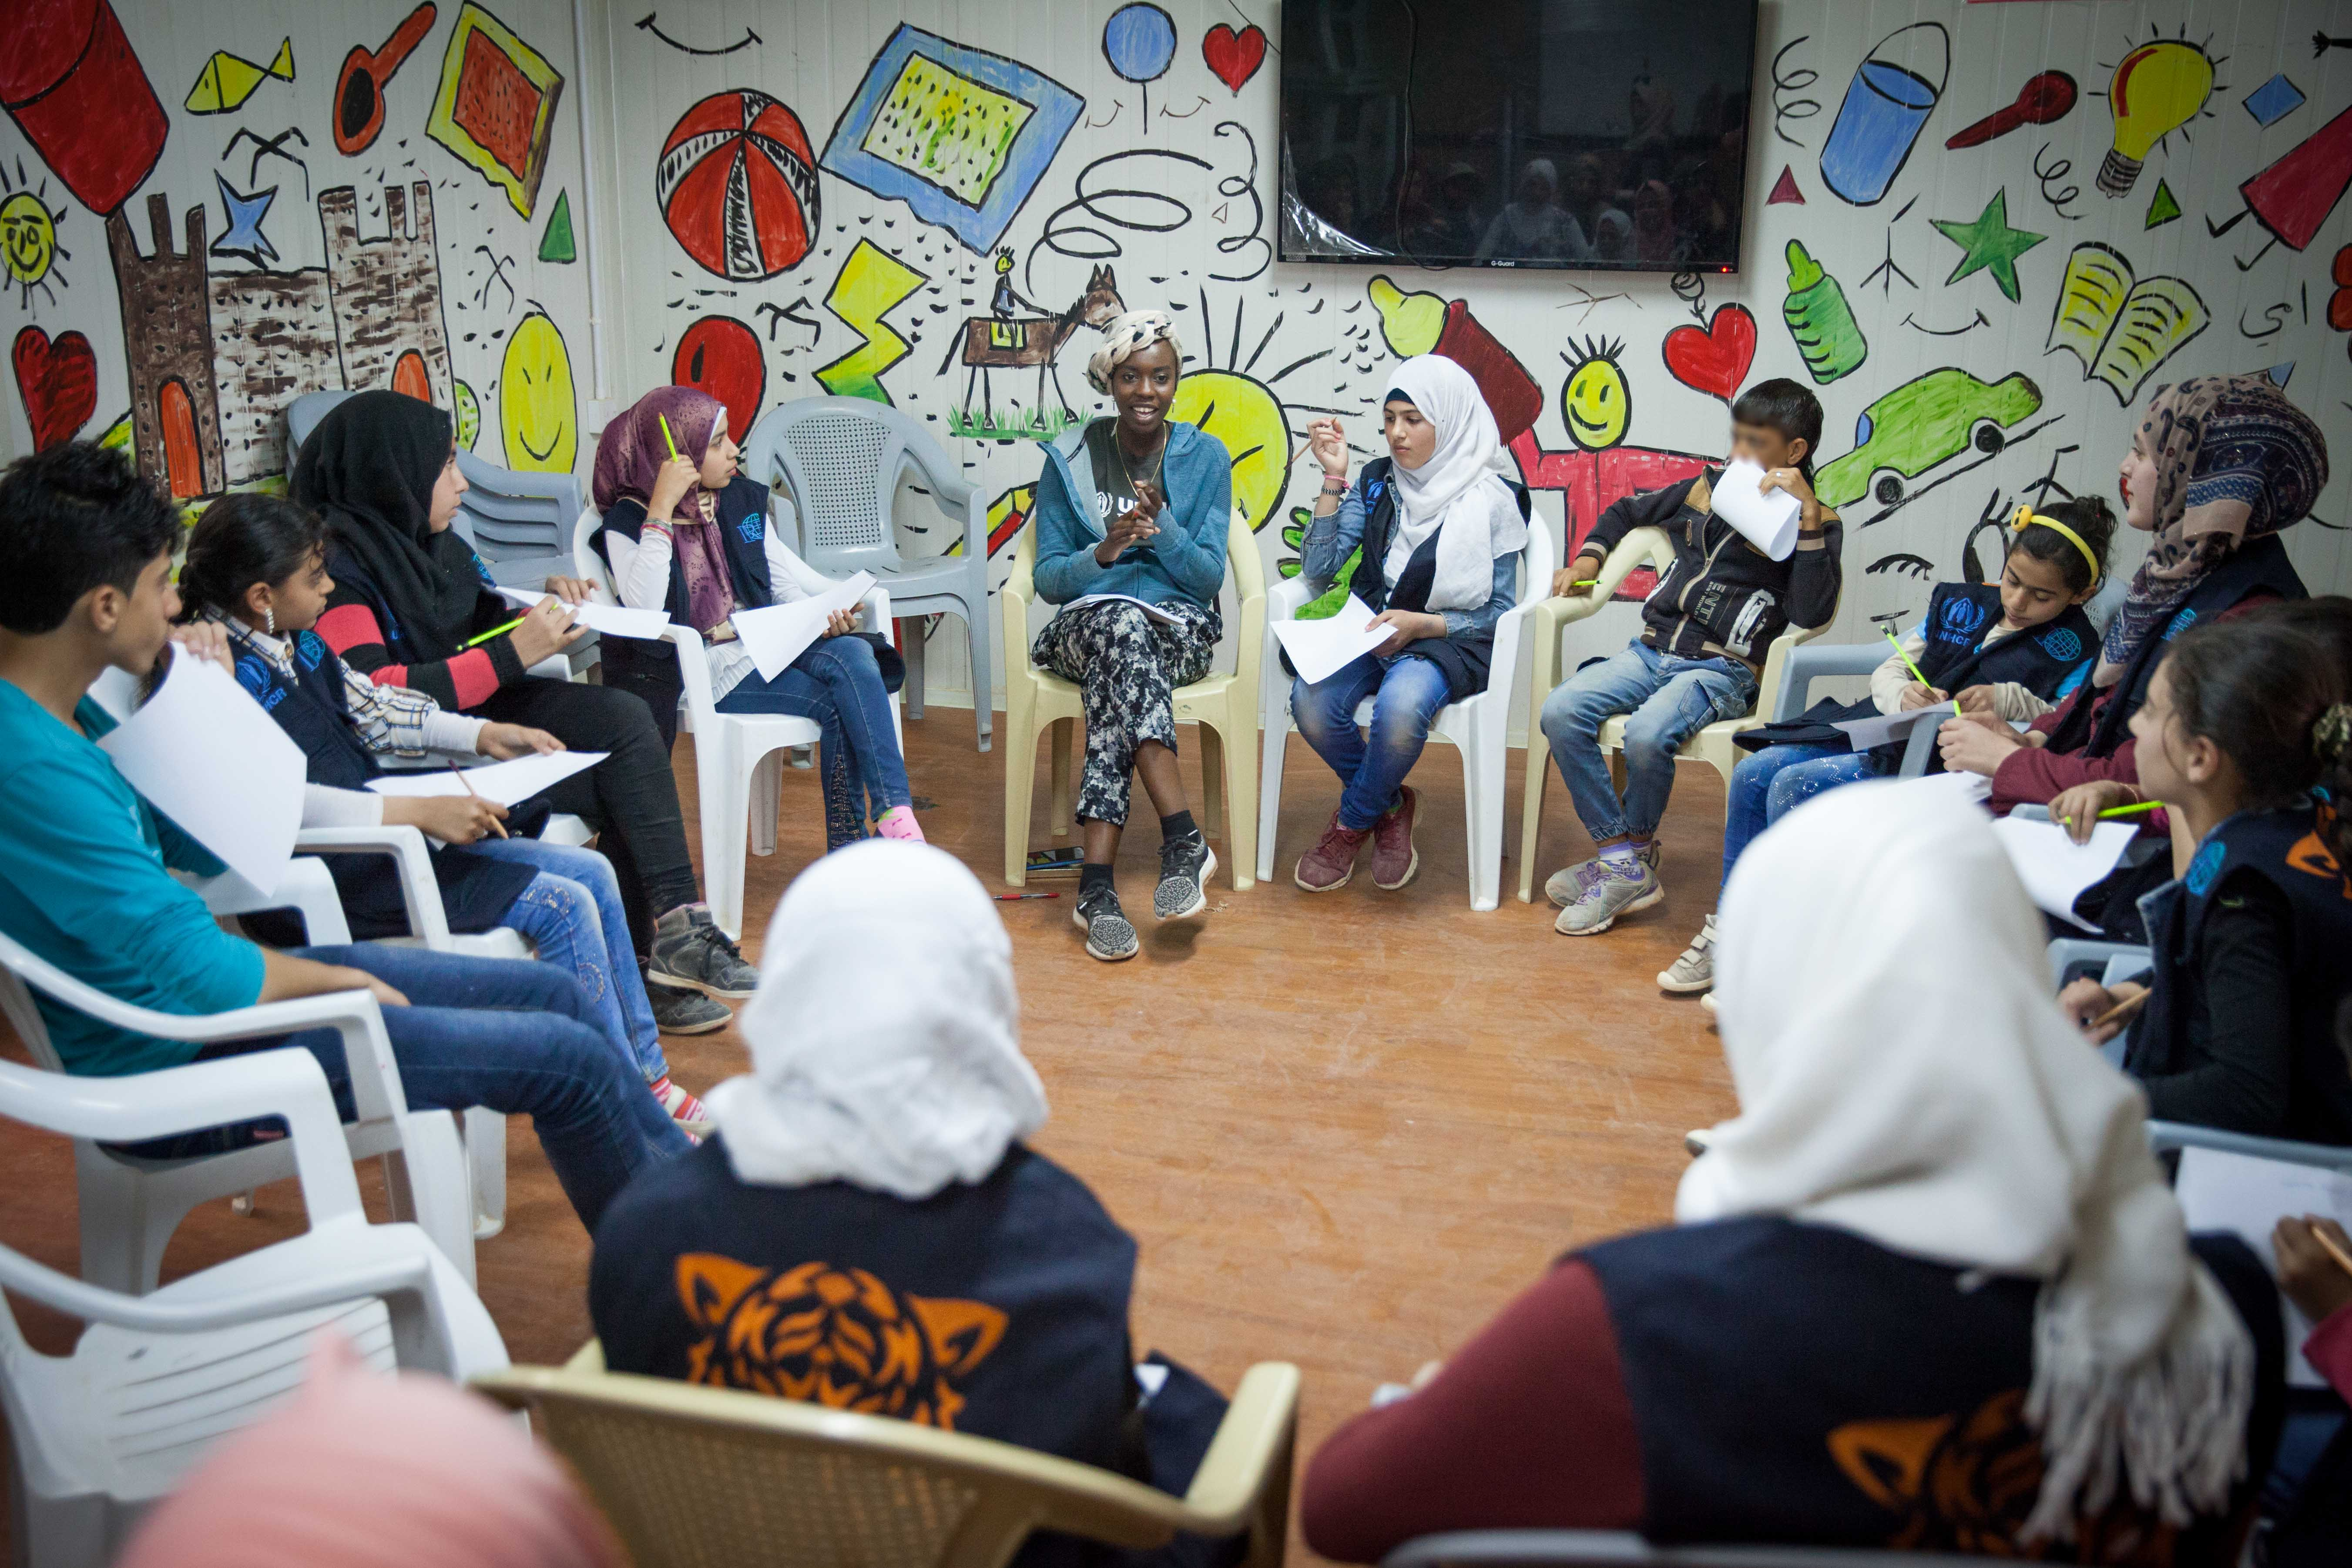 UNHCR High Profile Supporter Emi Mahmoud conducts a poetry workshop with girls and boys at the community center in Zaatari camp, Jordan. ; UNHCR High Profile Supporter Emi Mahmoud visists Syrian refugees in Jordan